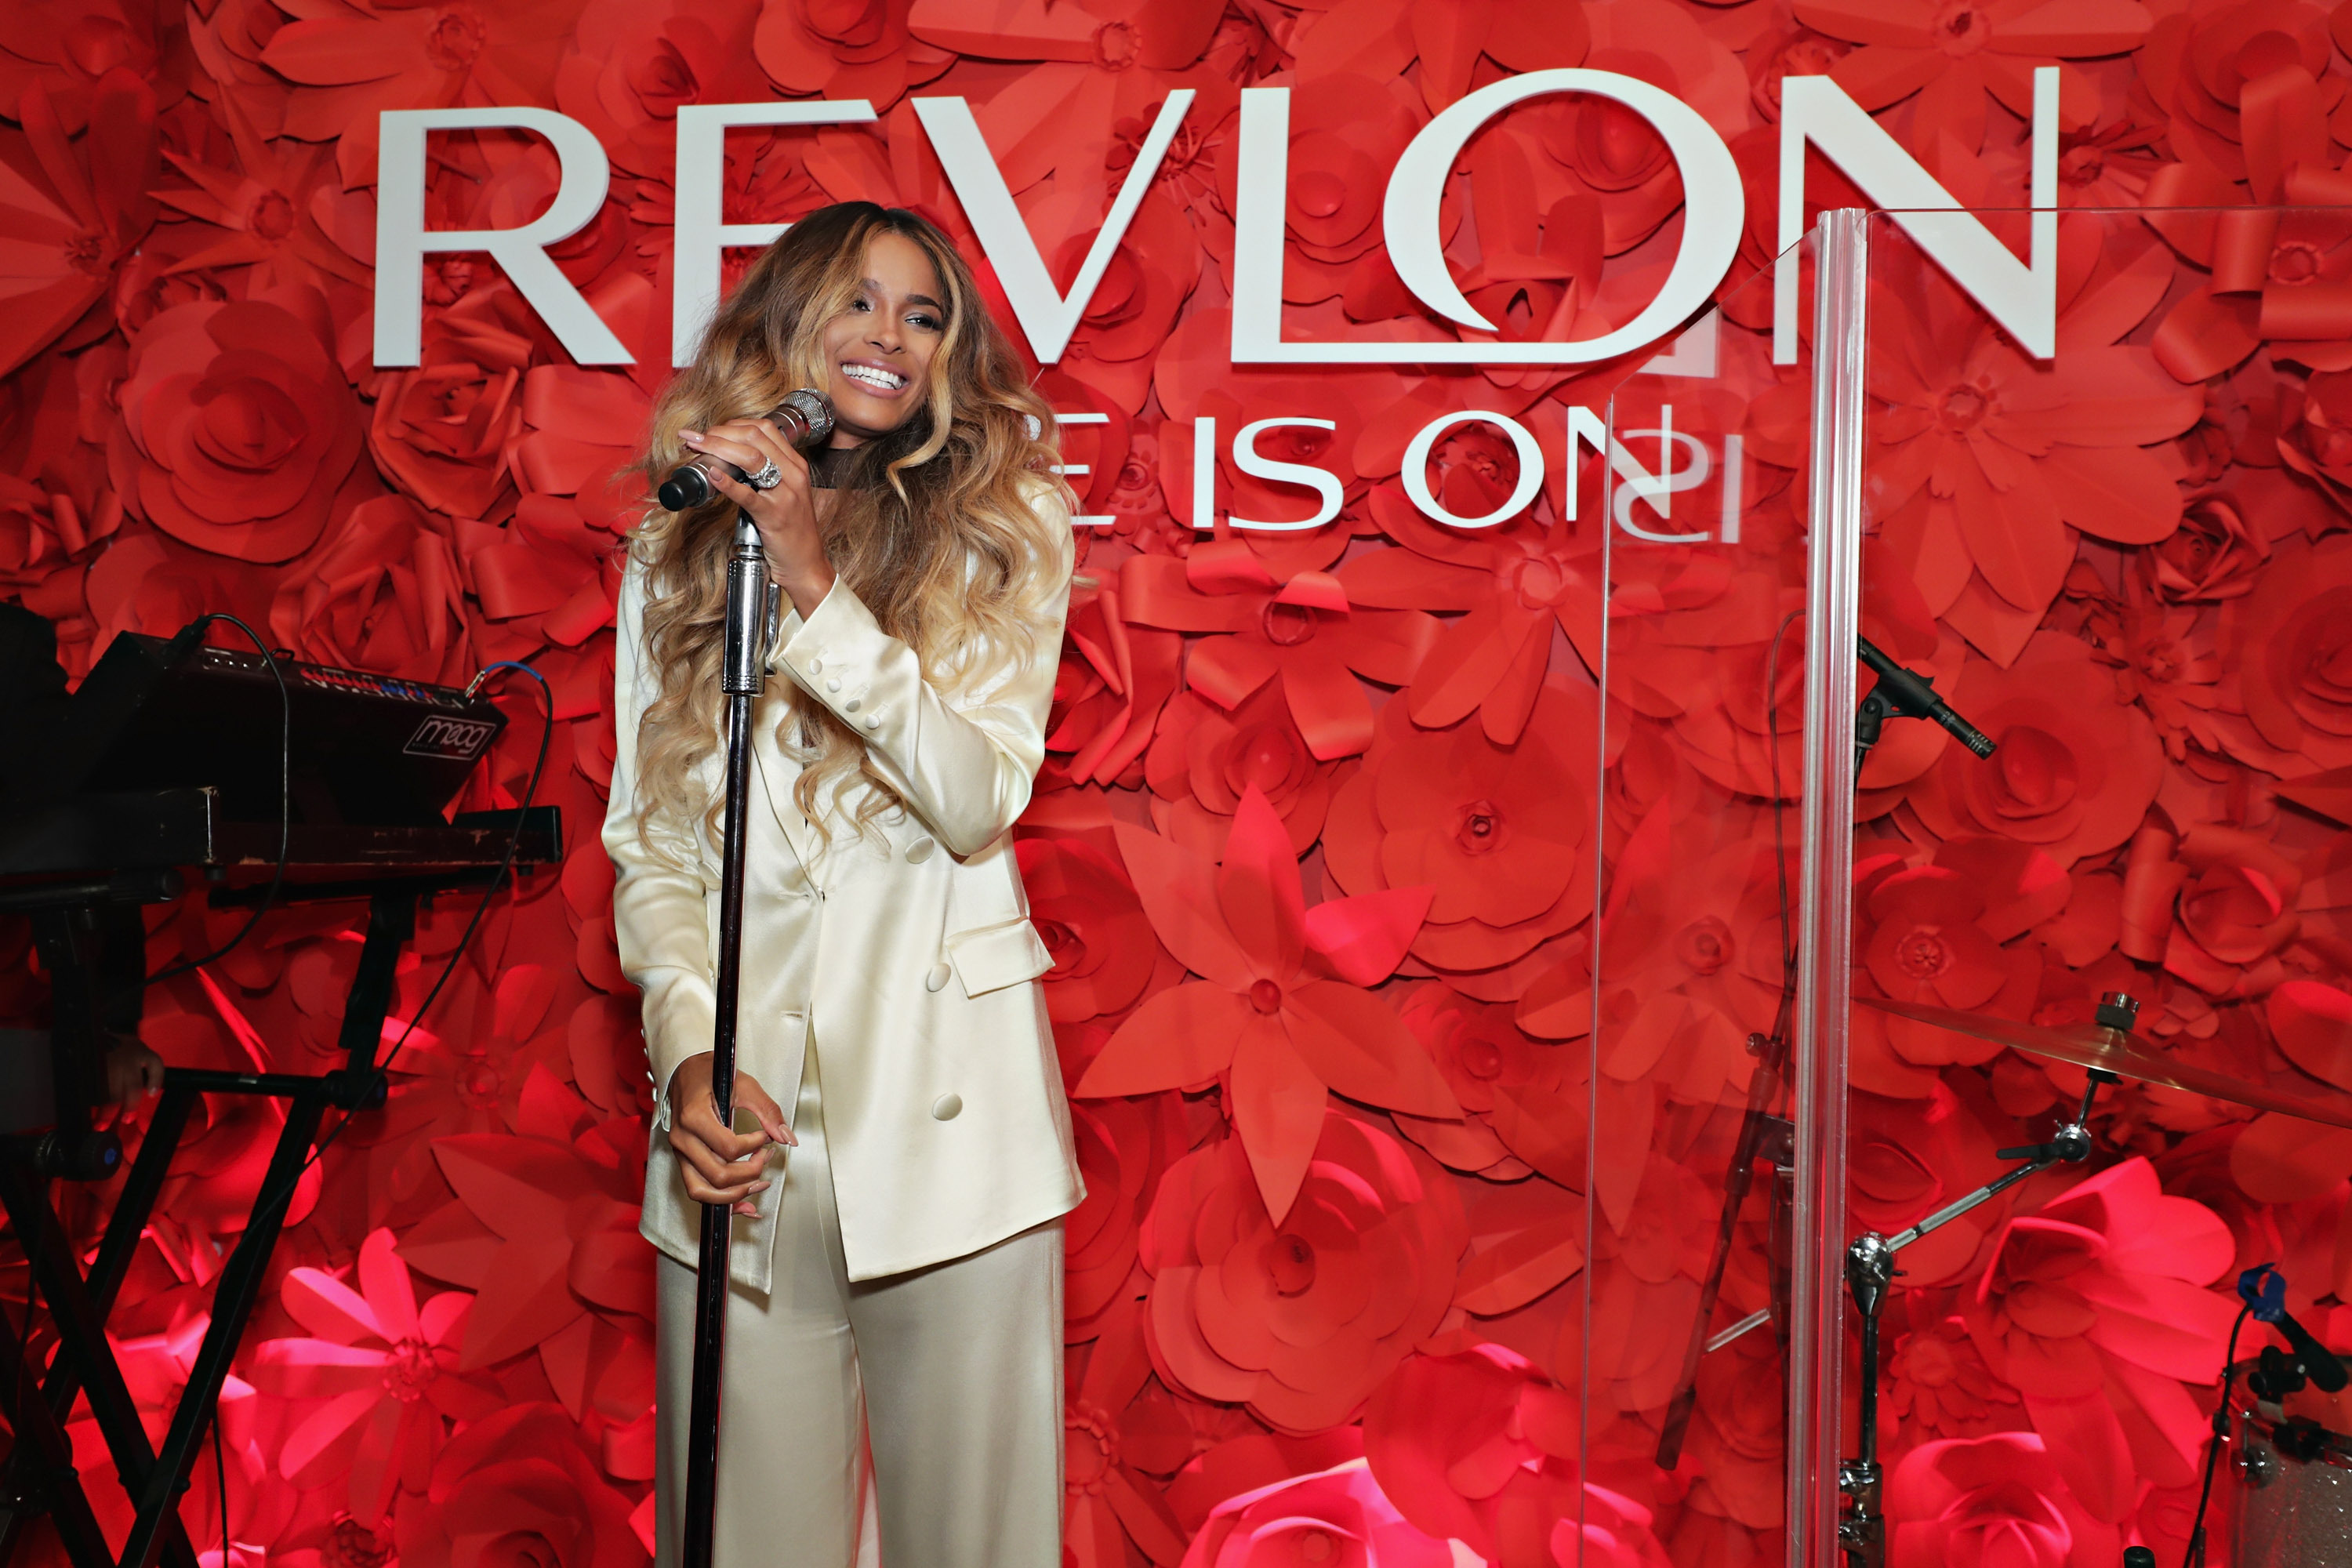 Revlon Brand Ambassador Ciara Performs on Stage at the RevlonXCiara Launch Event in New York City/Refinery Hotel (Photo: Business Wire)